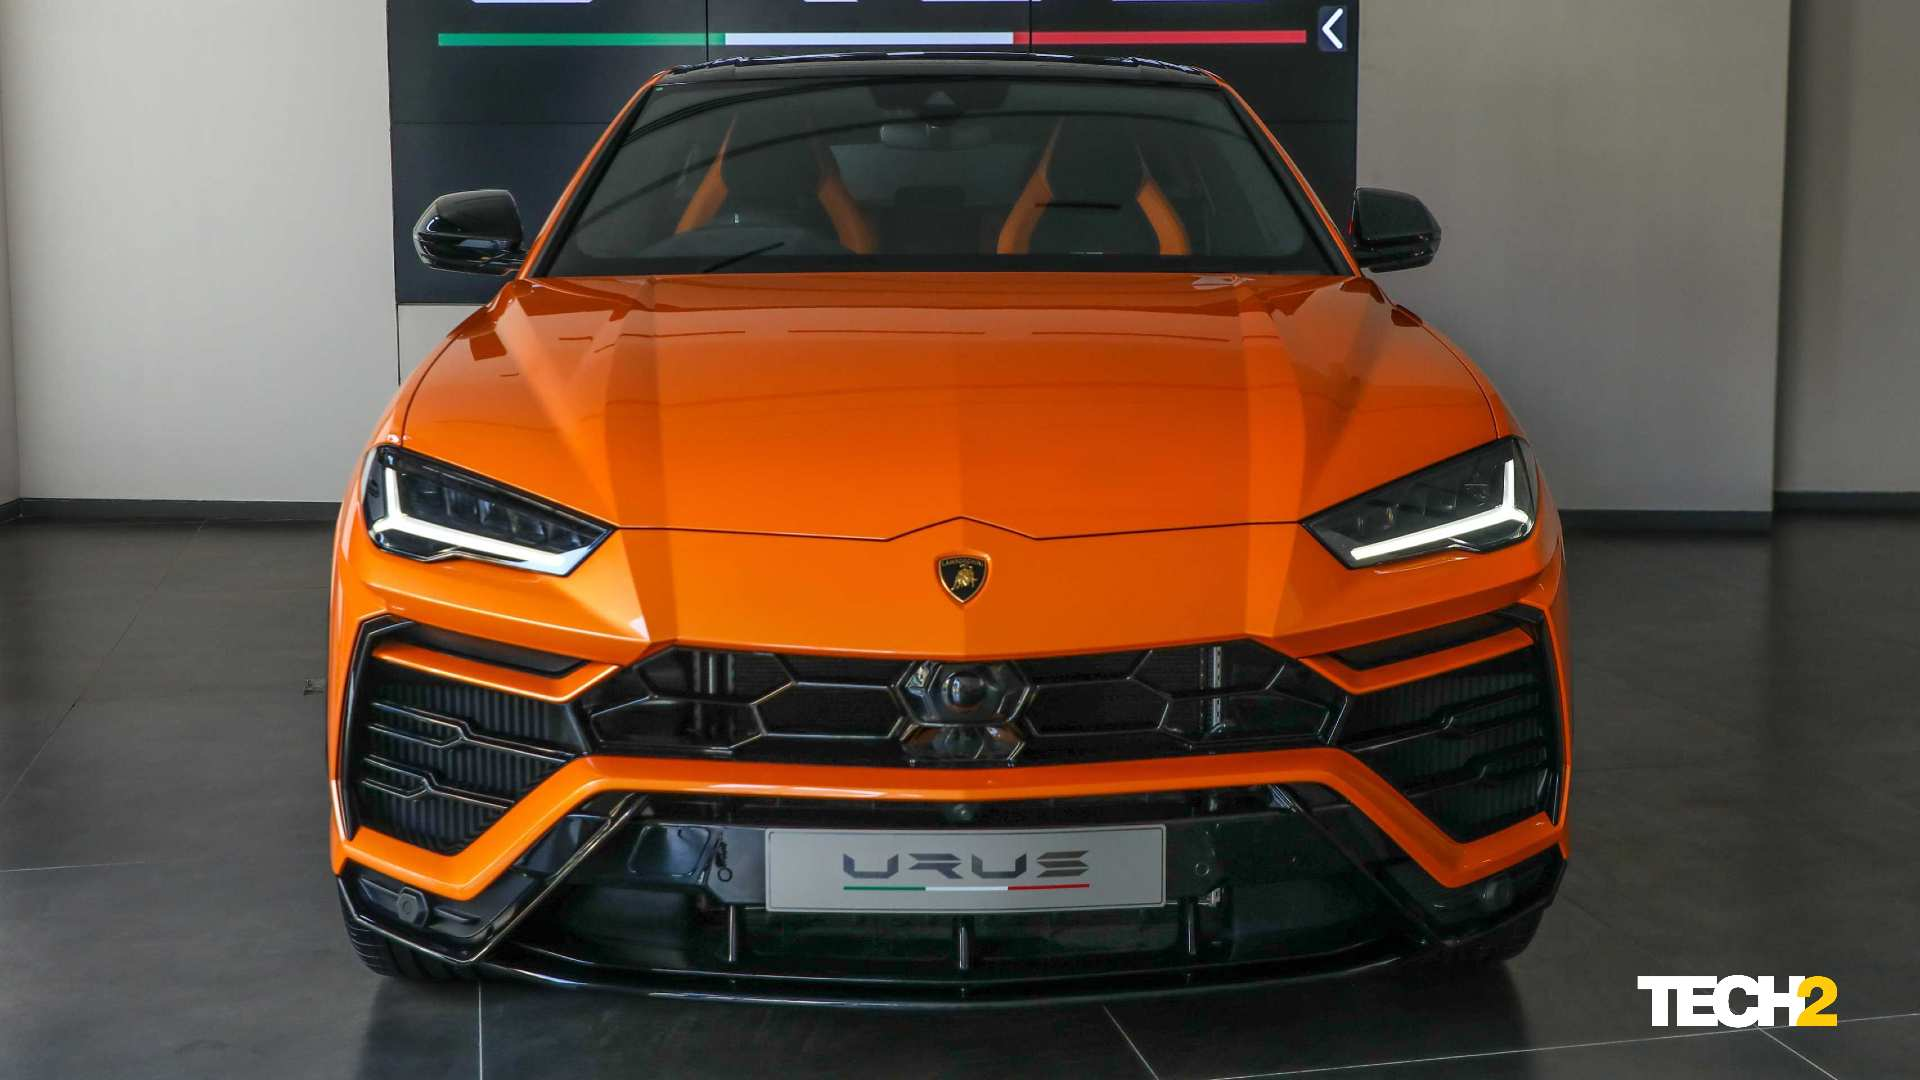 A majority of Urus buyers in India have shown preference for brighter colours, according to the company. Image: Lamborghini